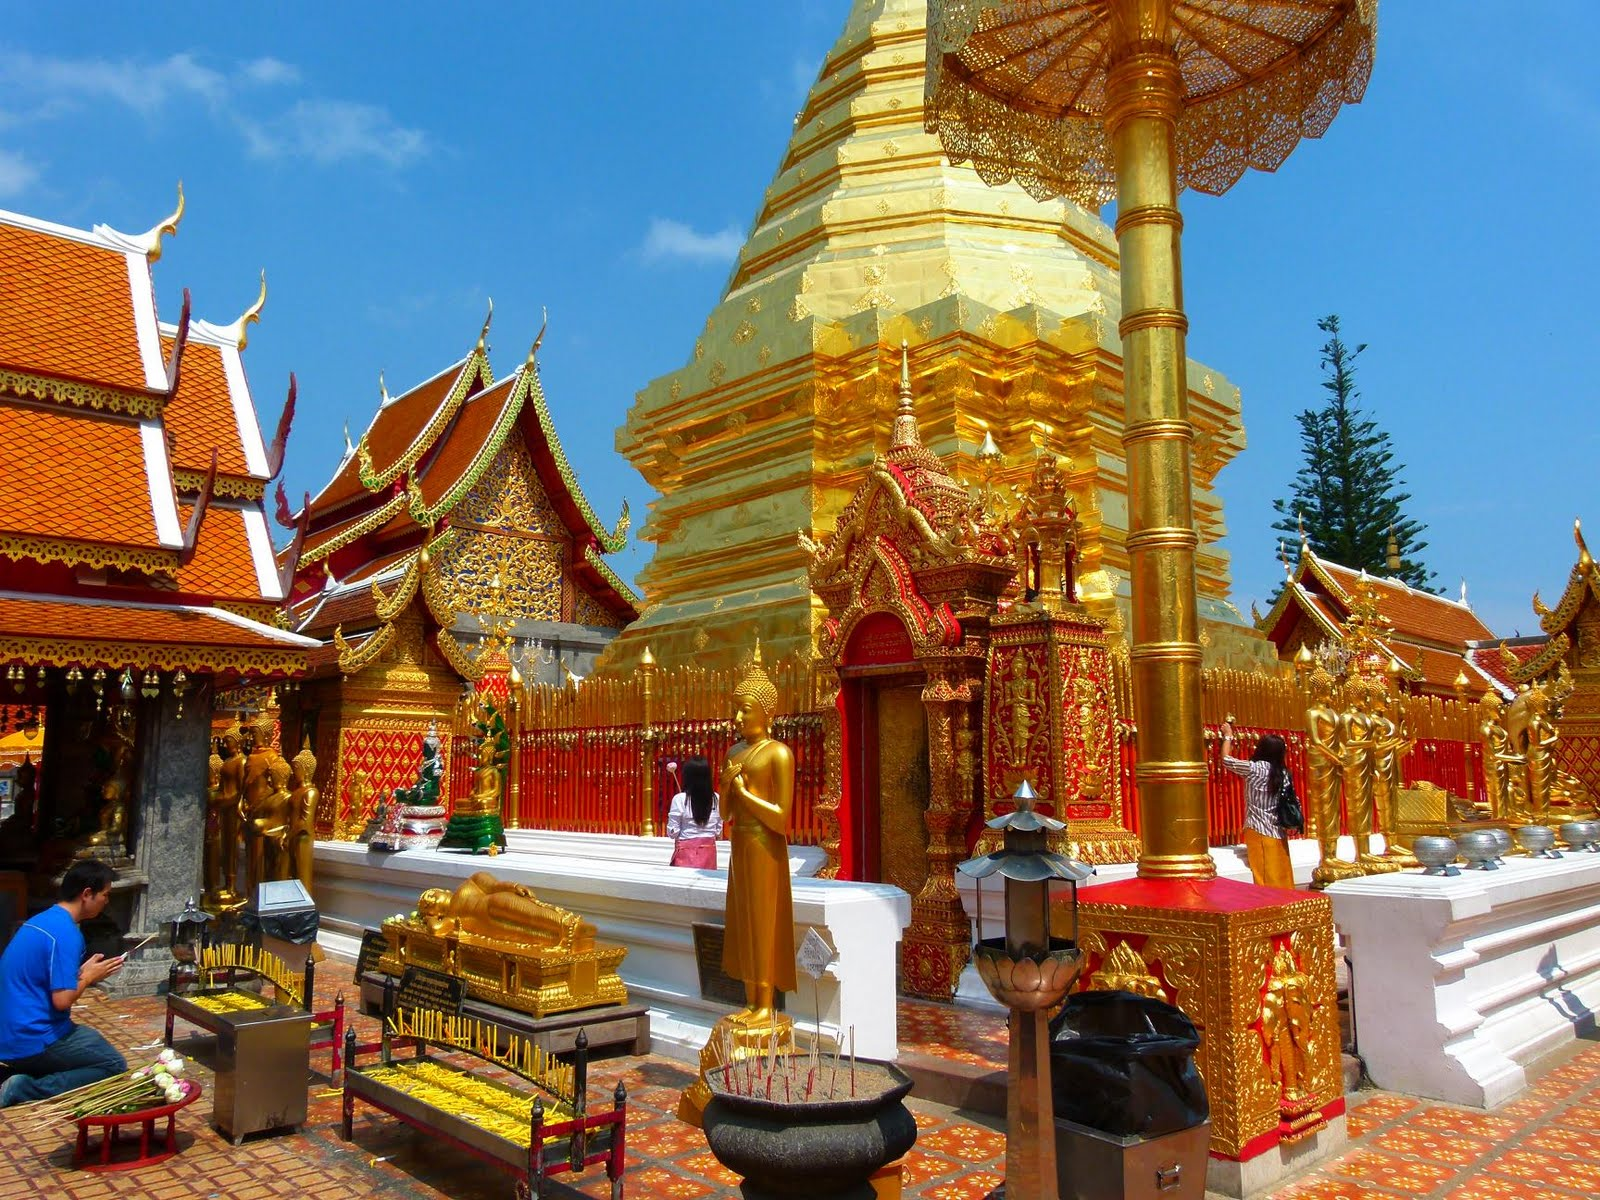 HERE AND THERE: Wat Phrathat Doi Suthep